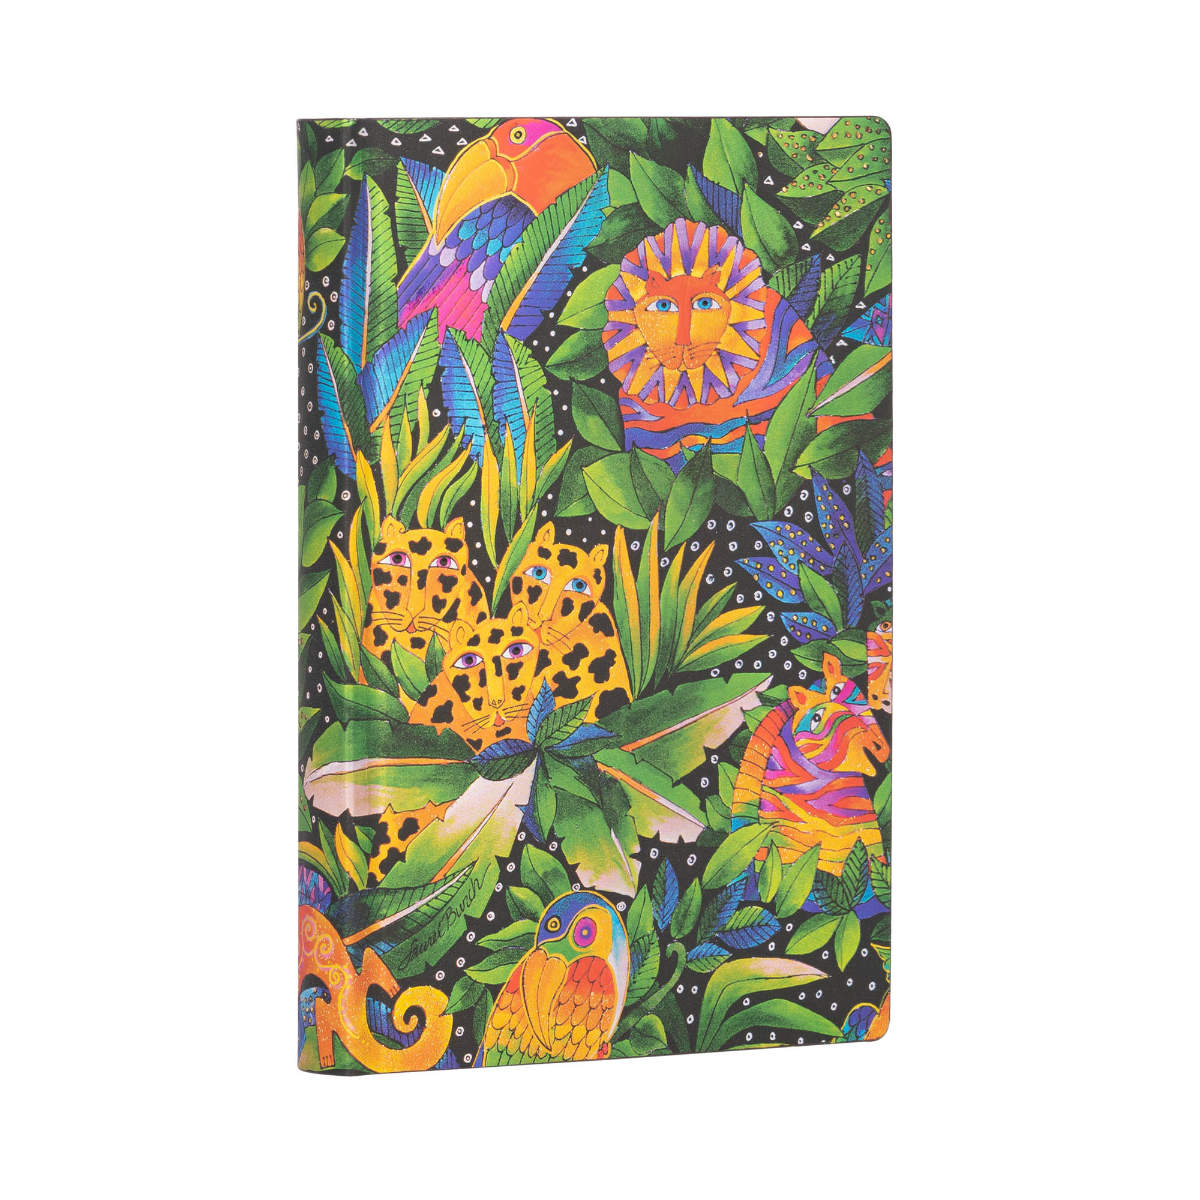 Paperblanks Flexis Laurel Burch Jungle Song Mini Journal